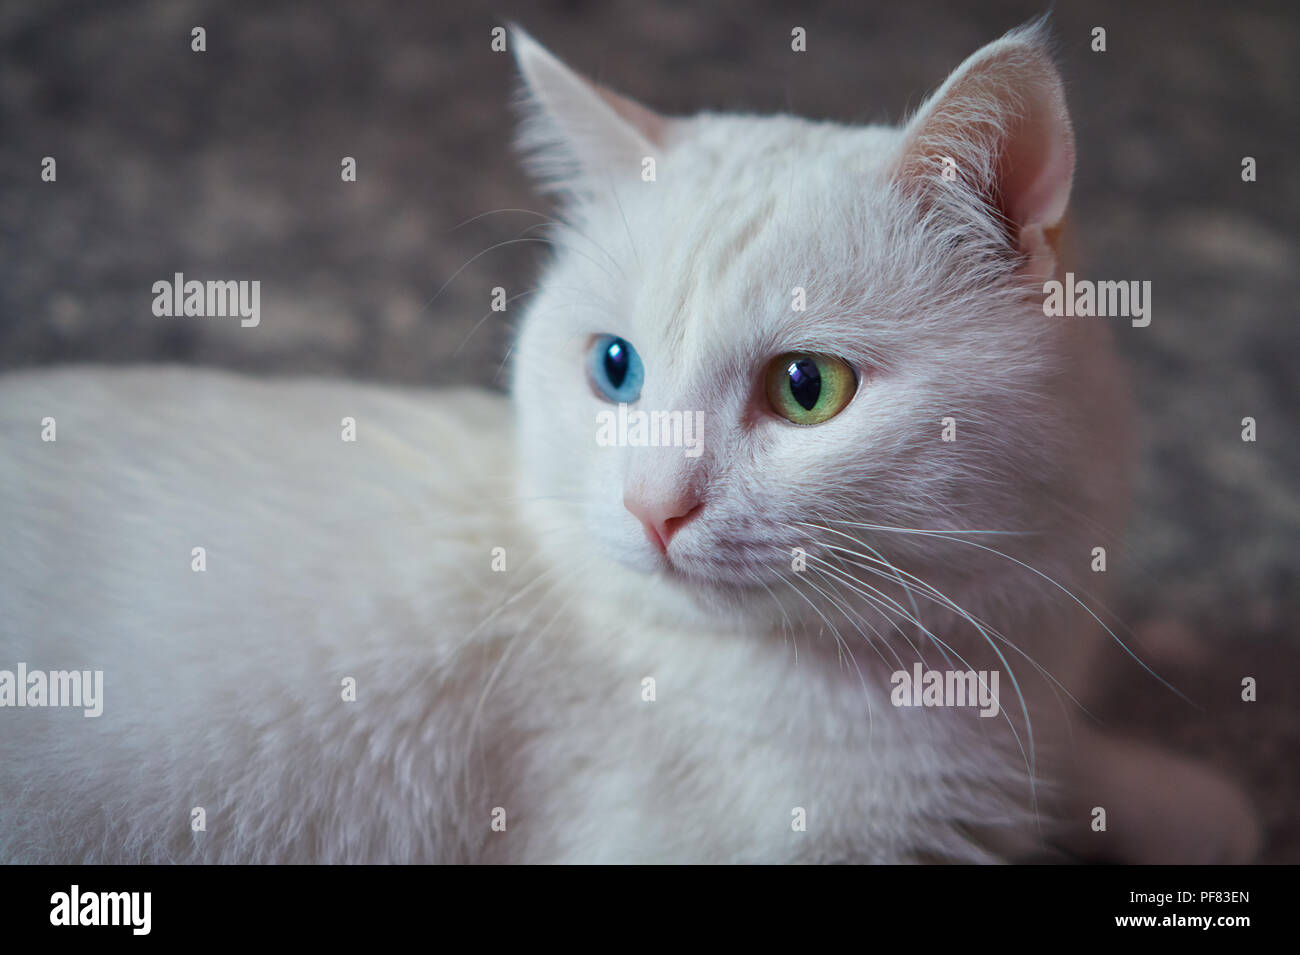 Cat with 2 different-colored eyes (heterocromatic eyes) — Turkish Angora. It is a cat with heterochromia. Cat looking to the left - Stock Image